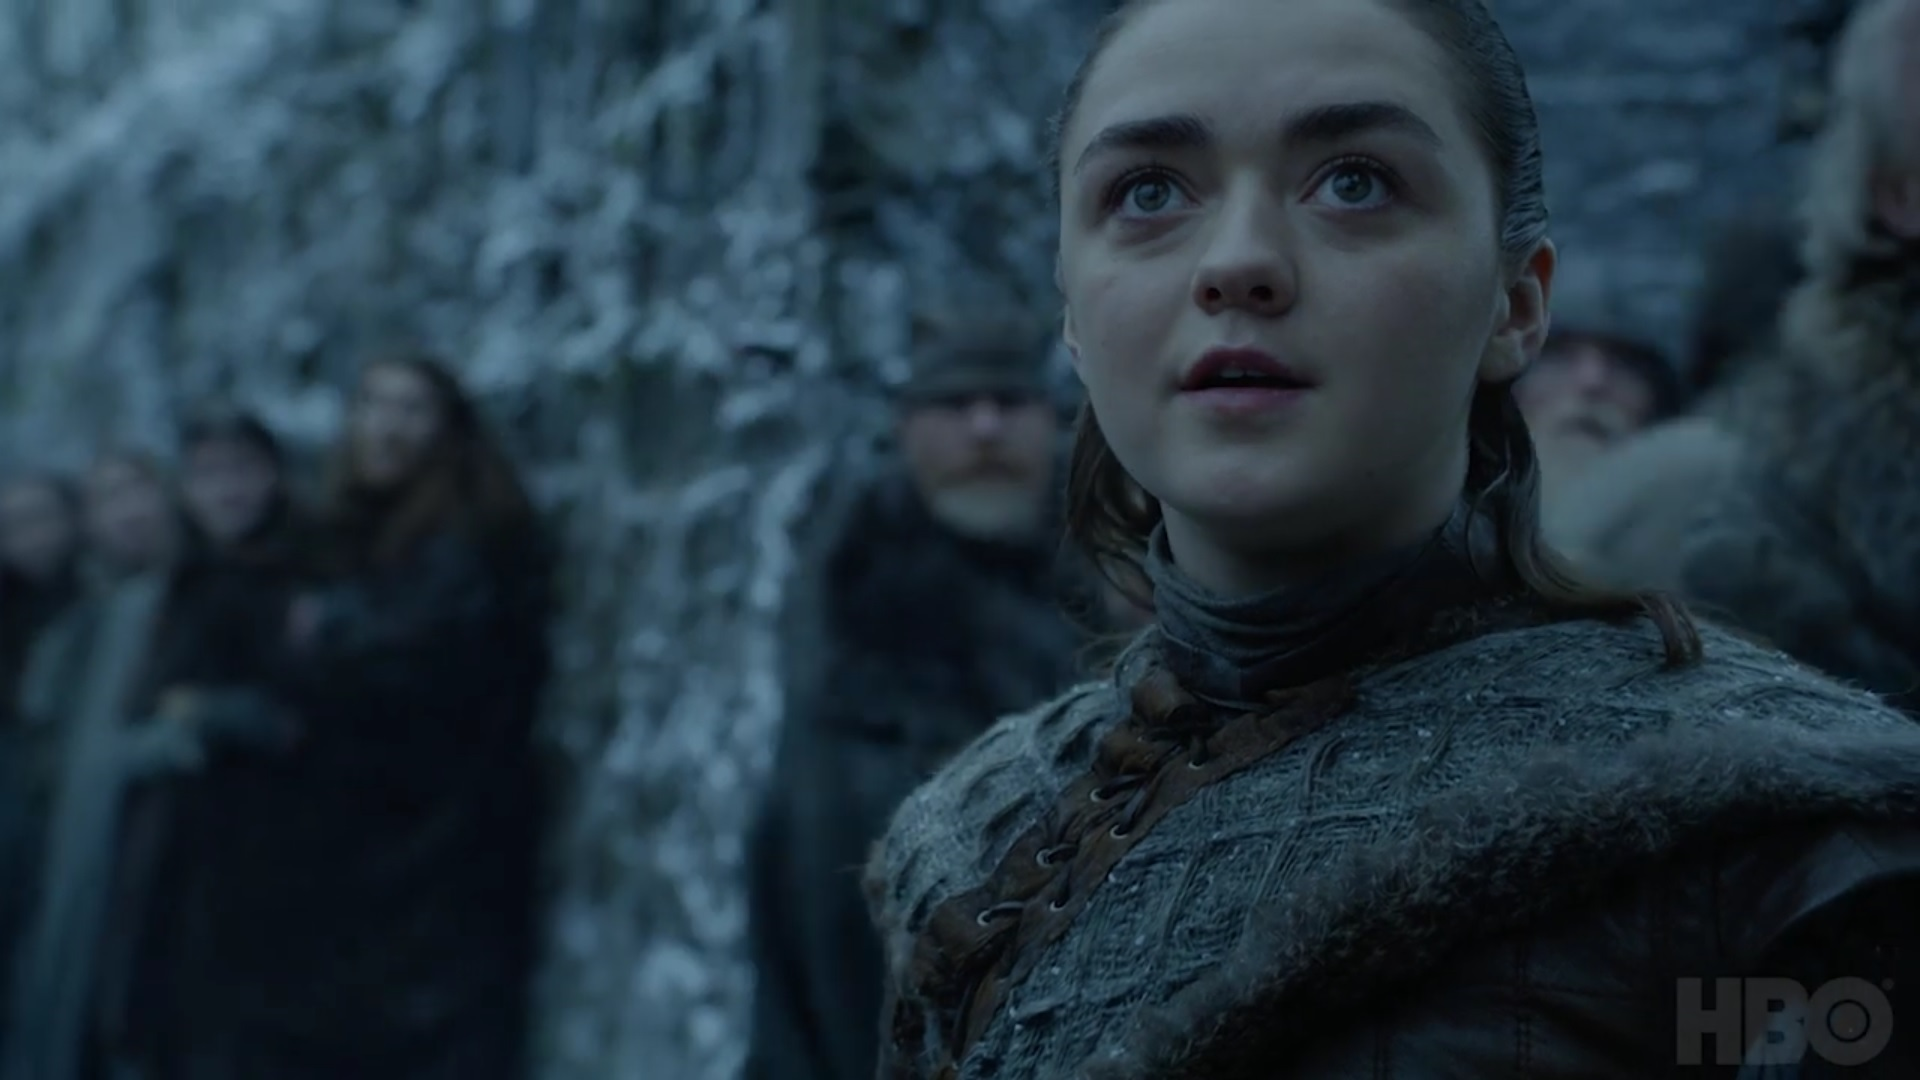 New Peek At Game Of Thrones Season 8 In Hbo 19 It All Starts Here